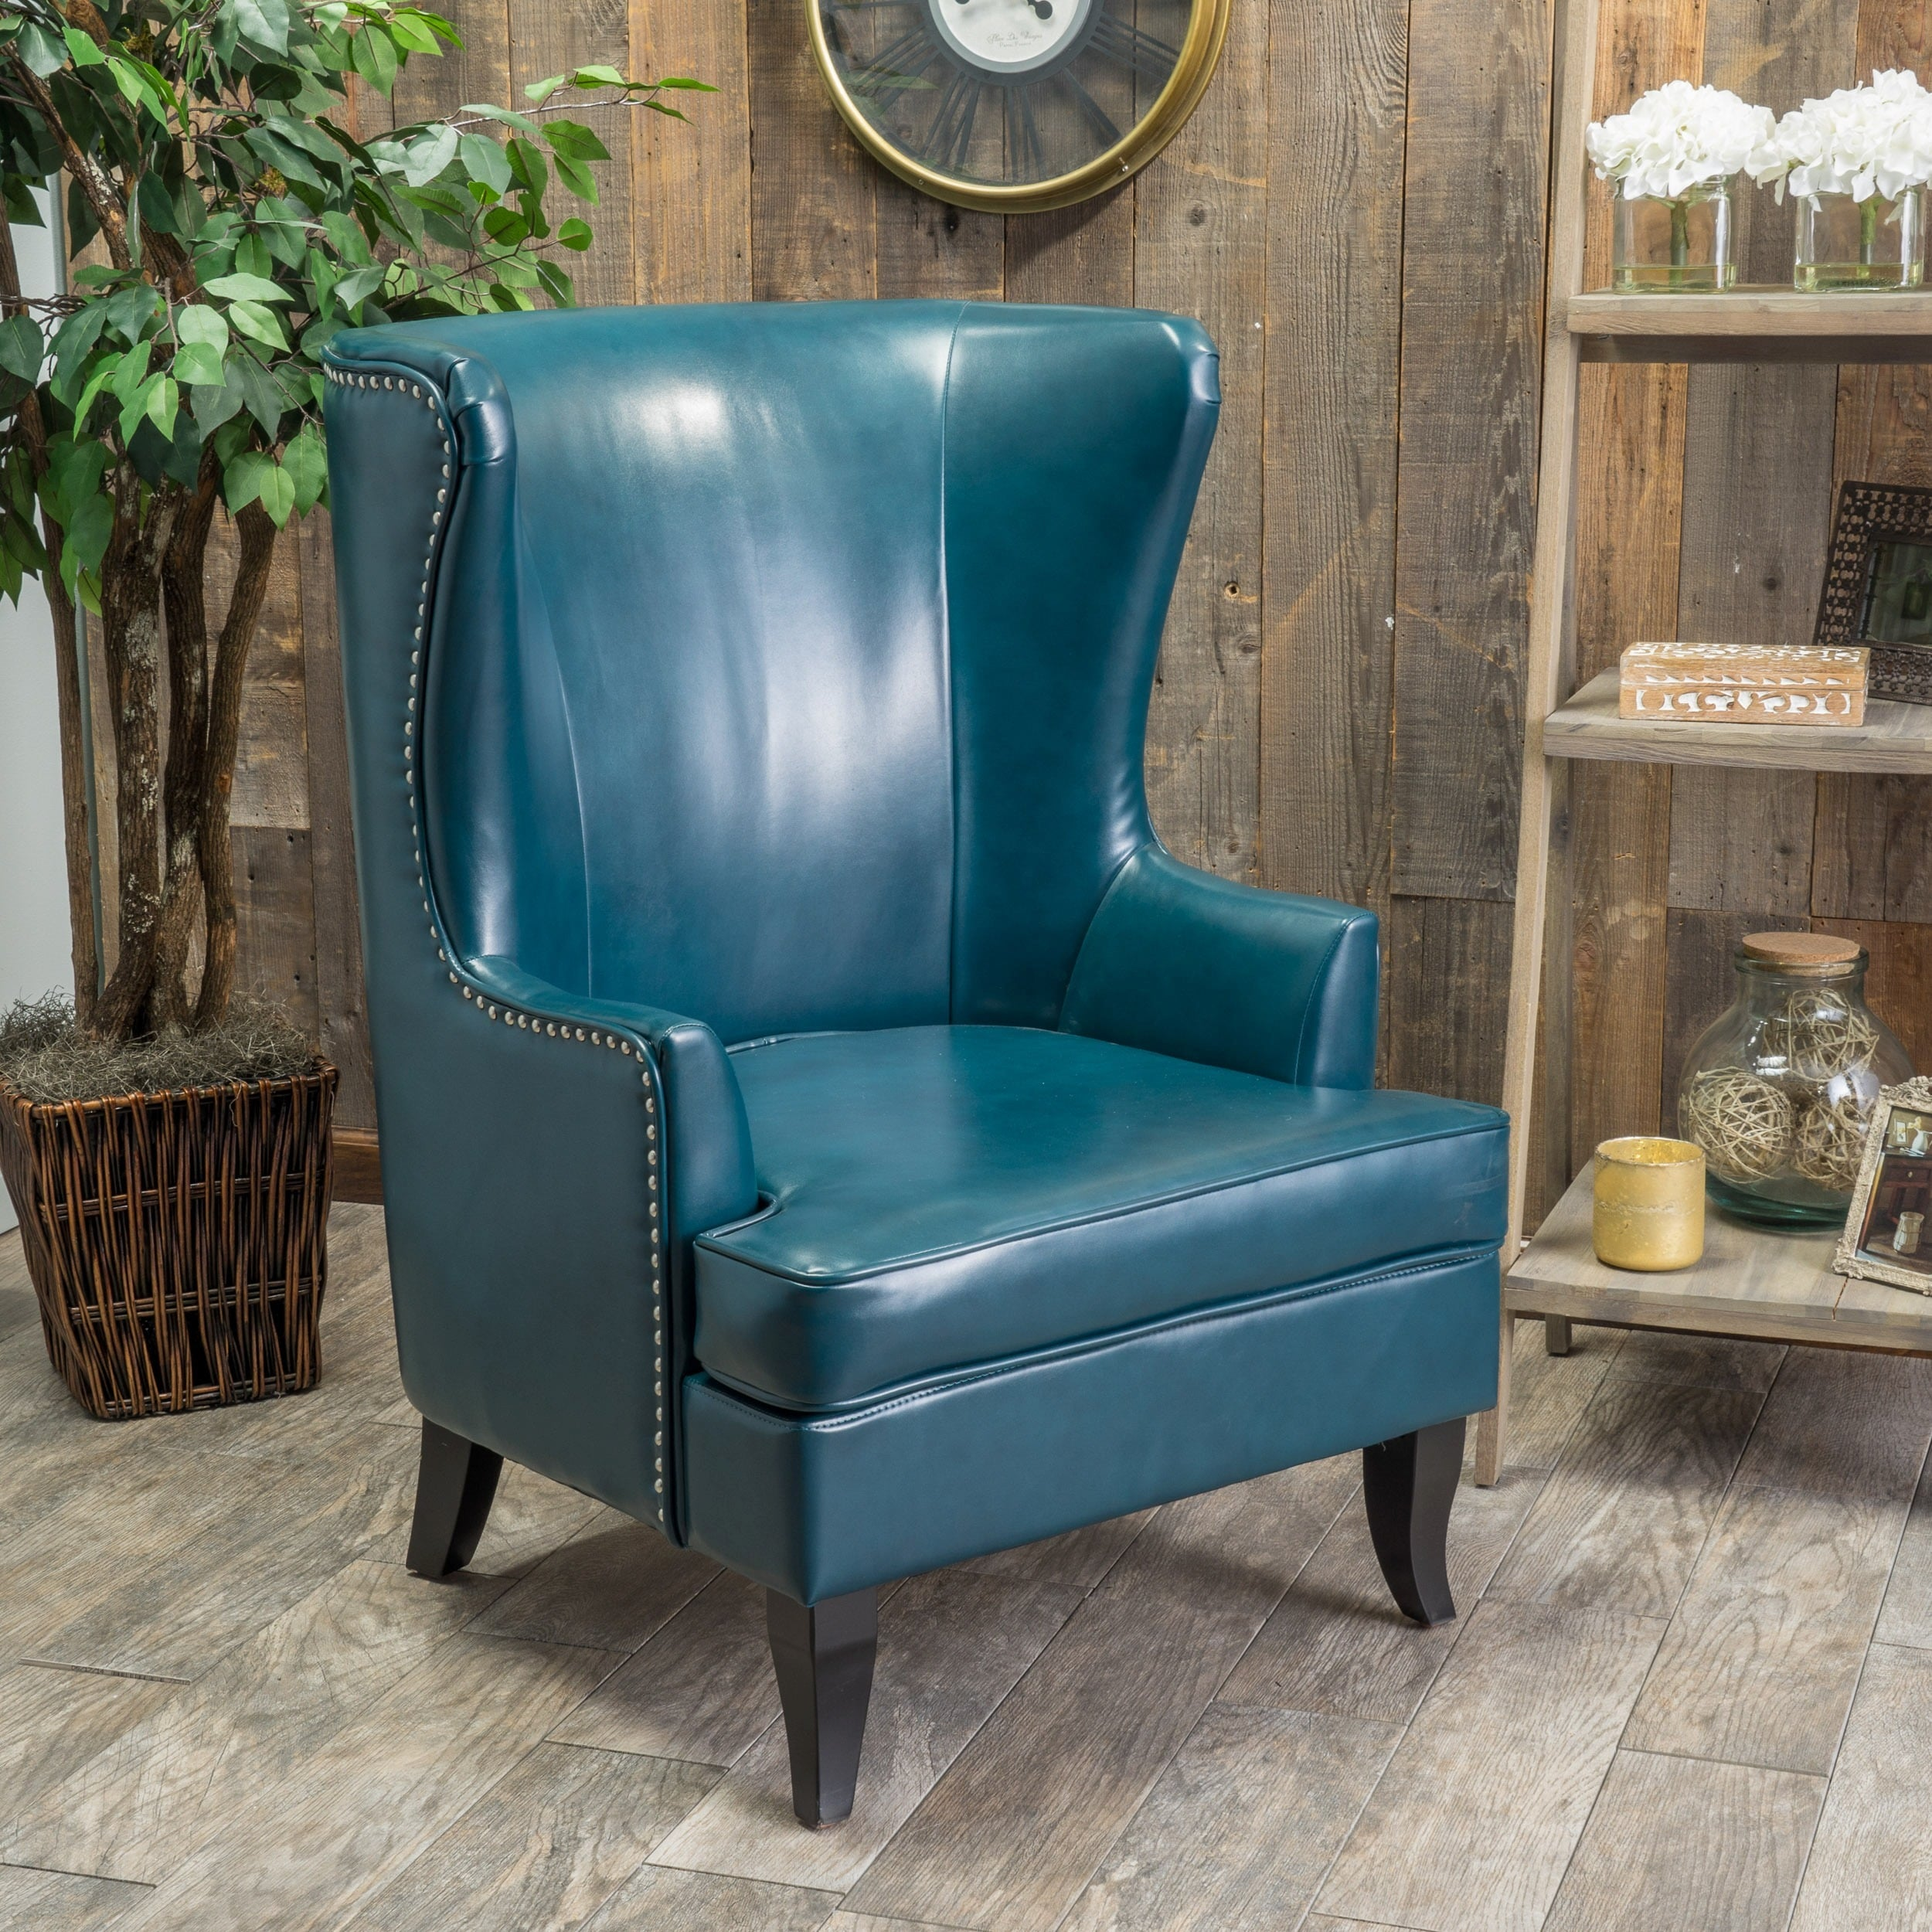 Phenomenal Canterburry High Back Bonded Leather Wing Chair By Christopher Knight Home Ocoug Best Dining Table And Chair Ideas Images Ocougorg